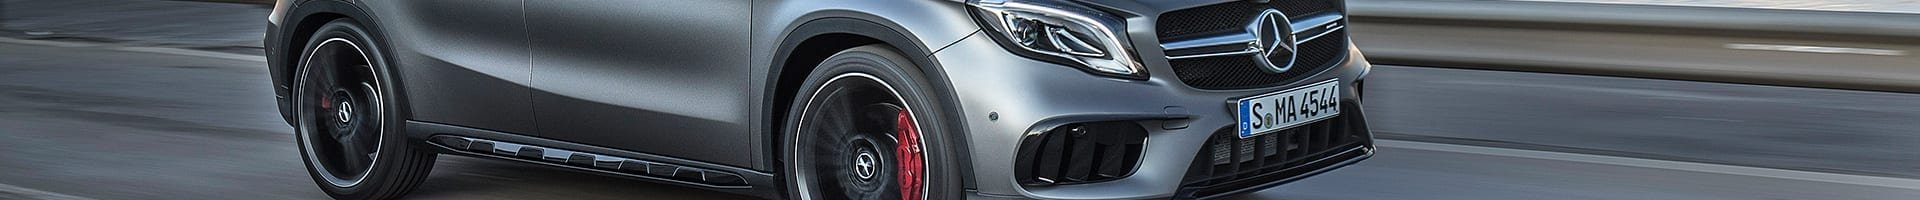 GLA - tuning & rims